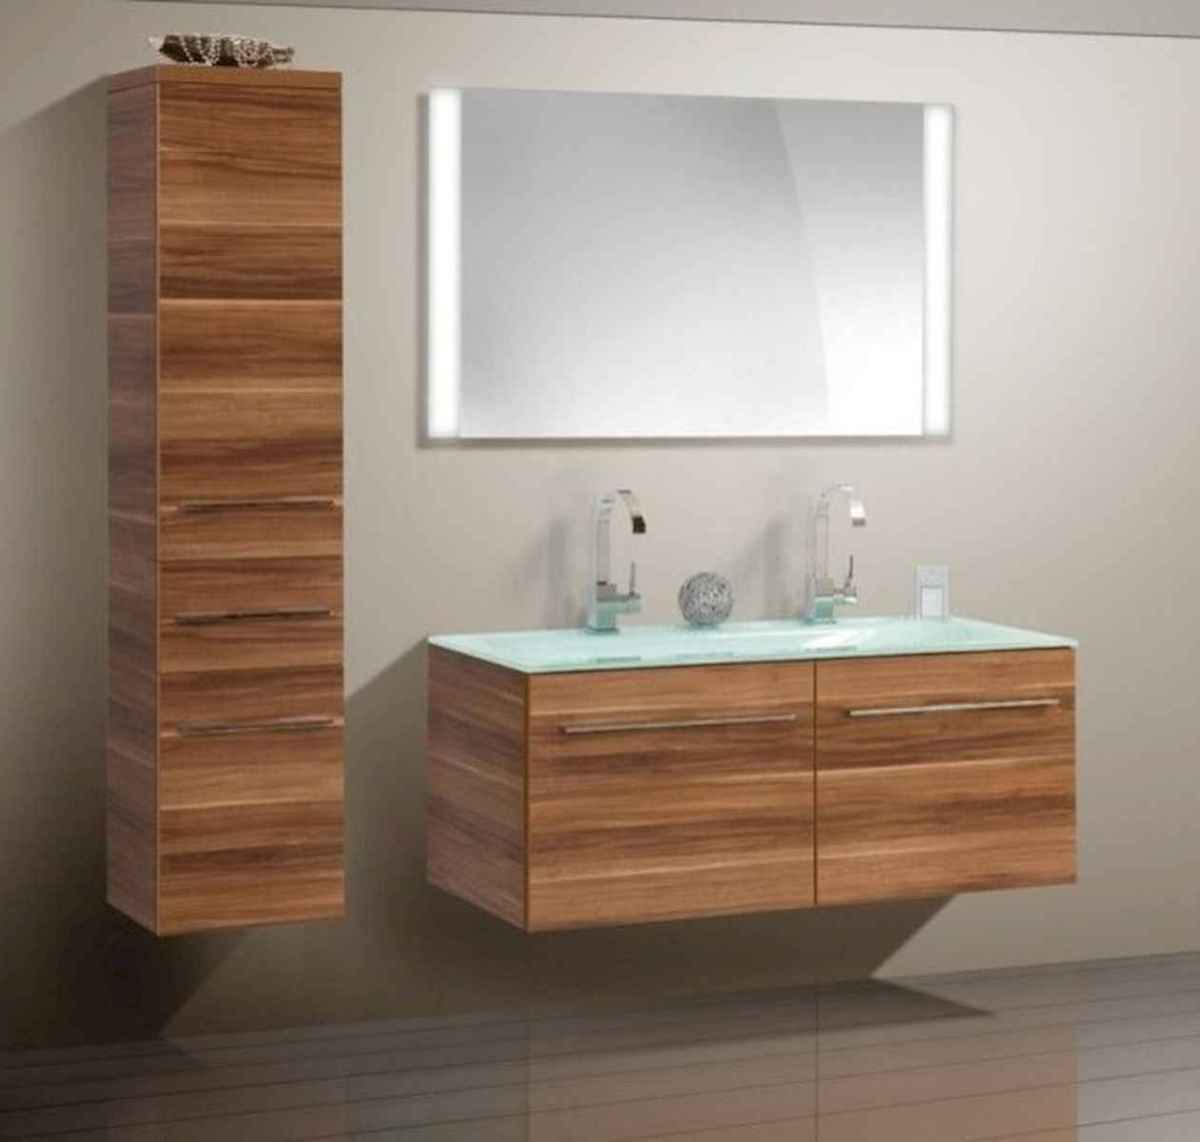 70 modern bathroom cabinets ideas decorations and remodel (31)